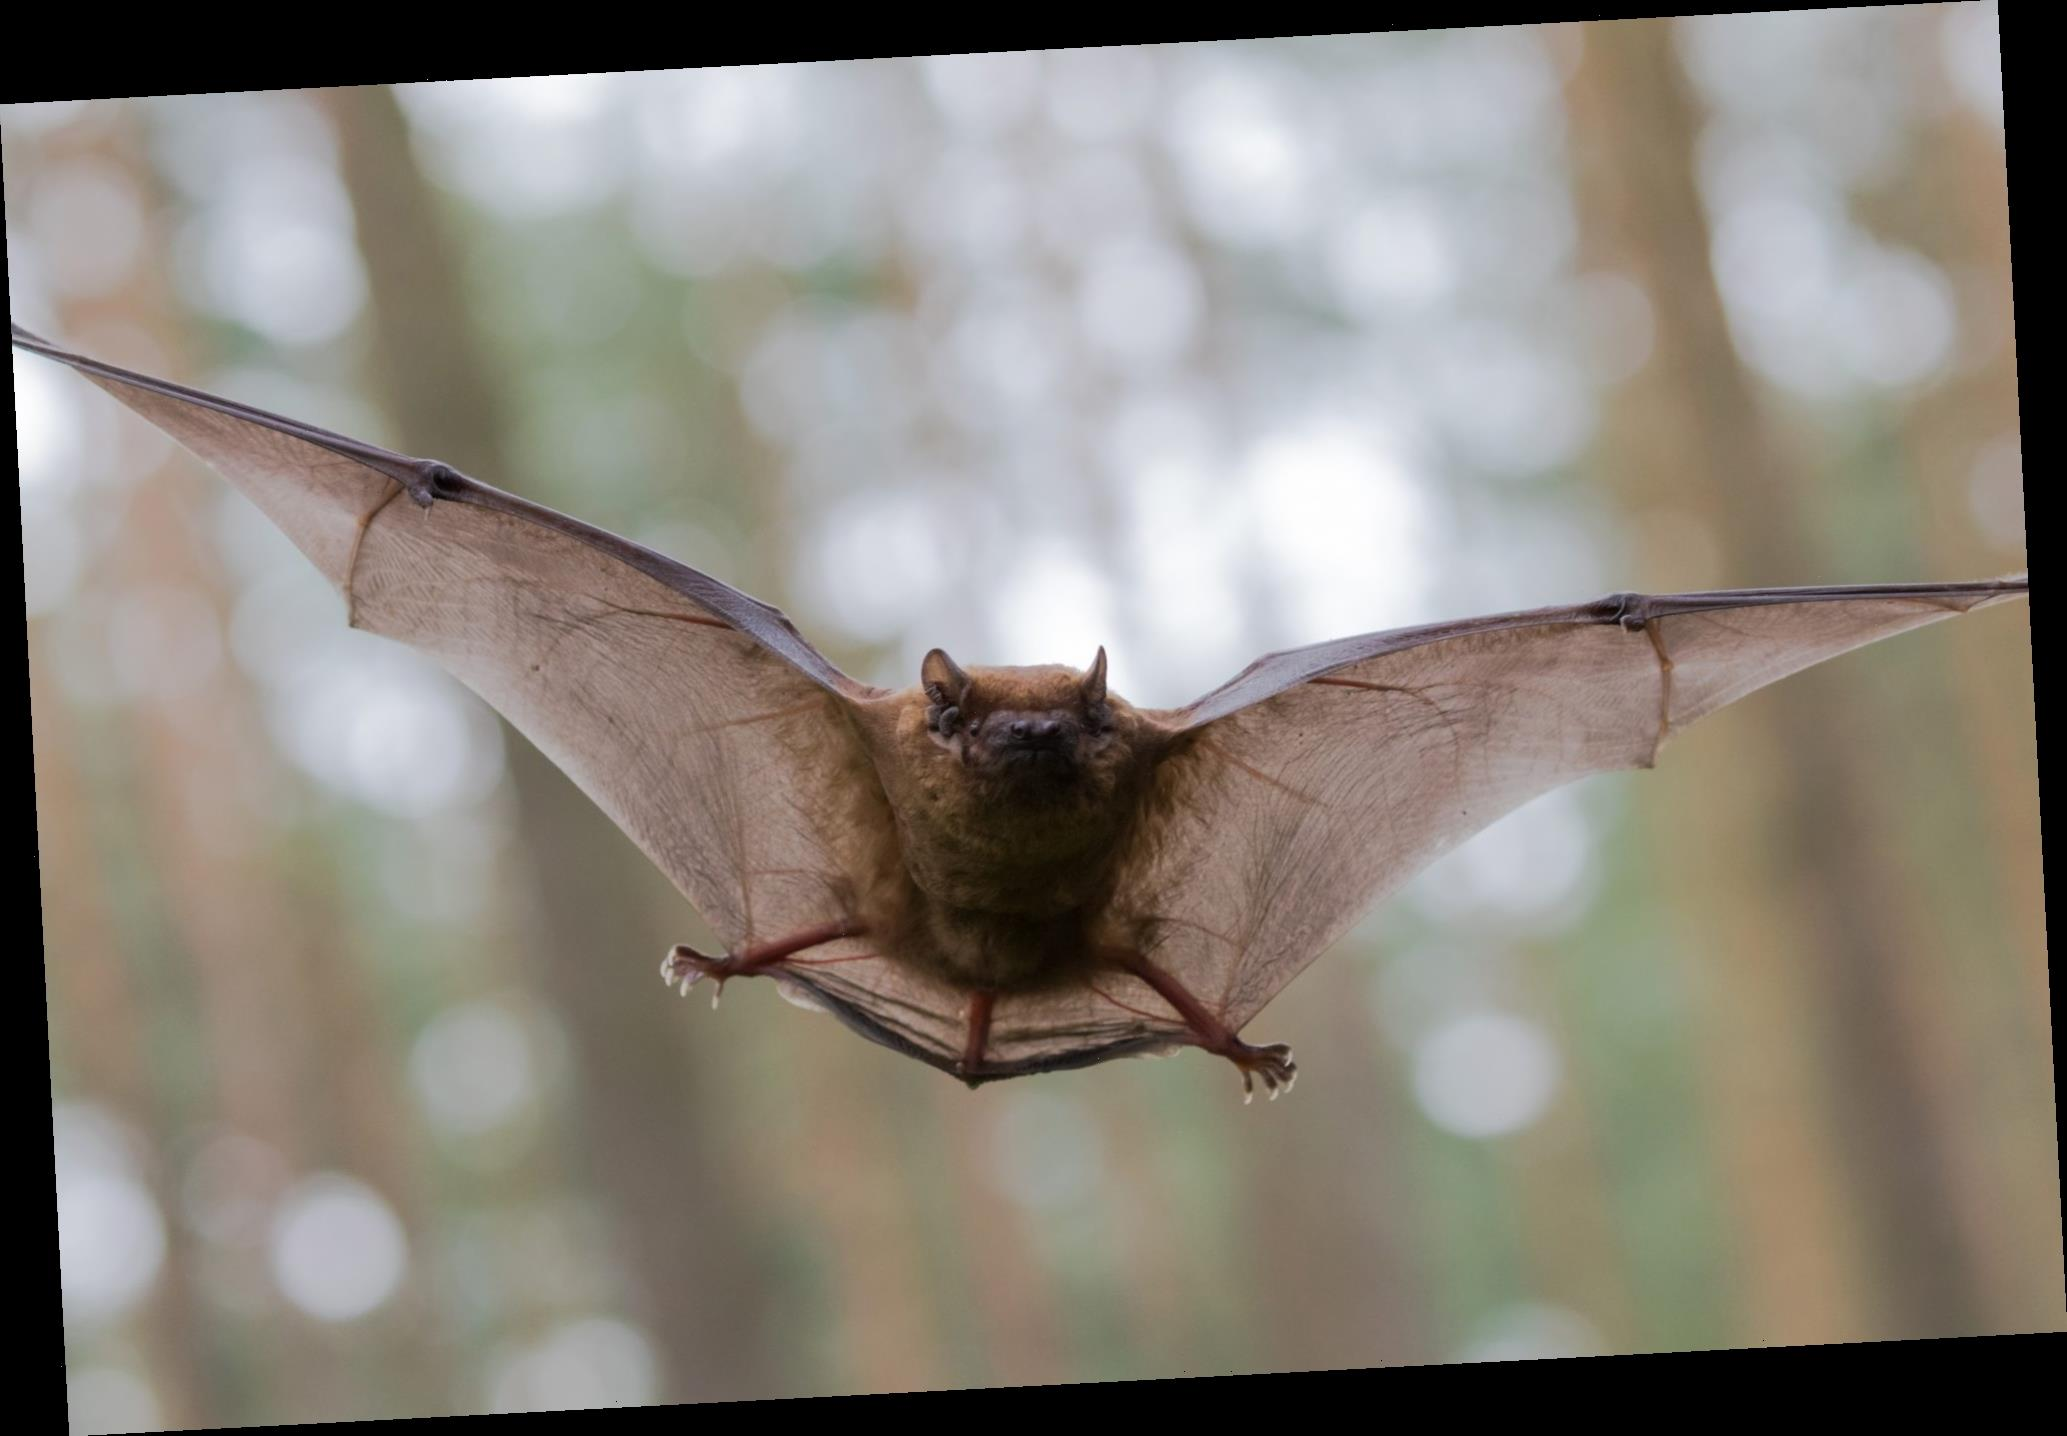 Bats offer COVID-19 treatment clues, scientists say